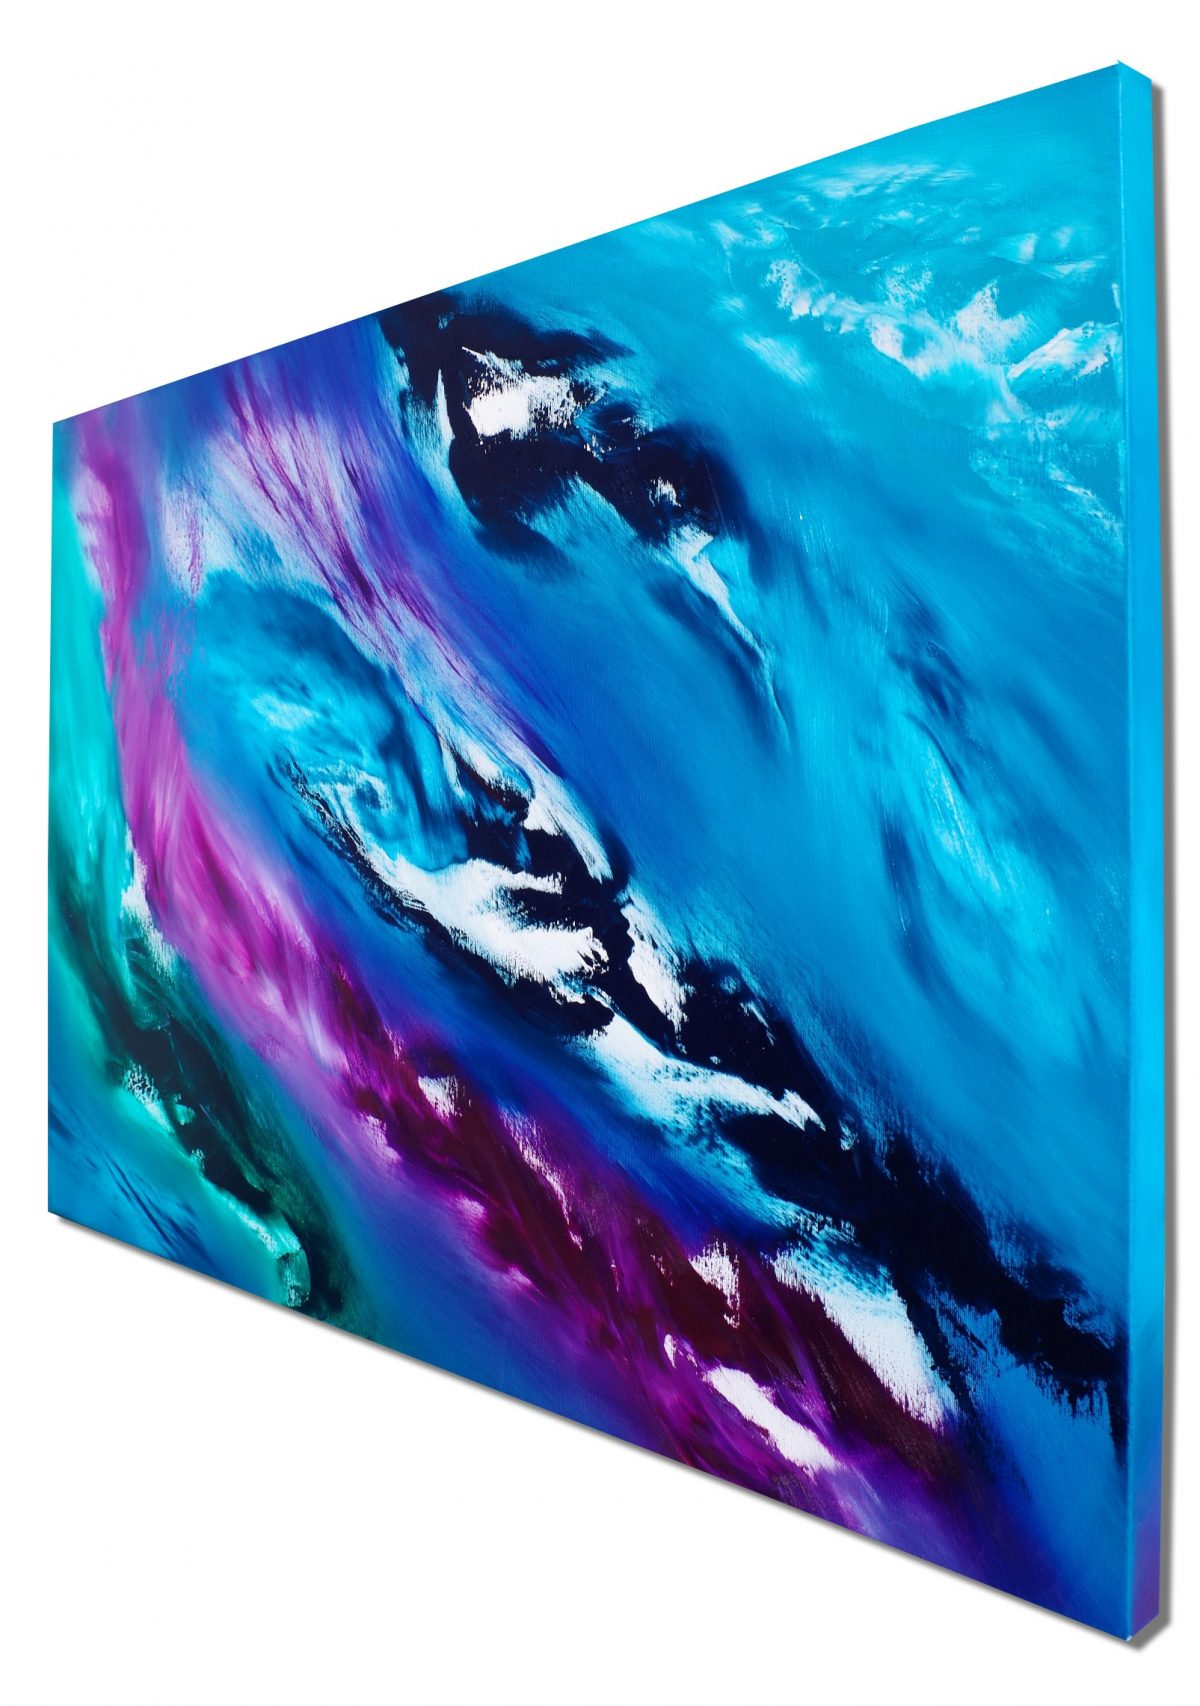 Blue Sky I 100x70 quadro dipinto originale astratto in vendita online